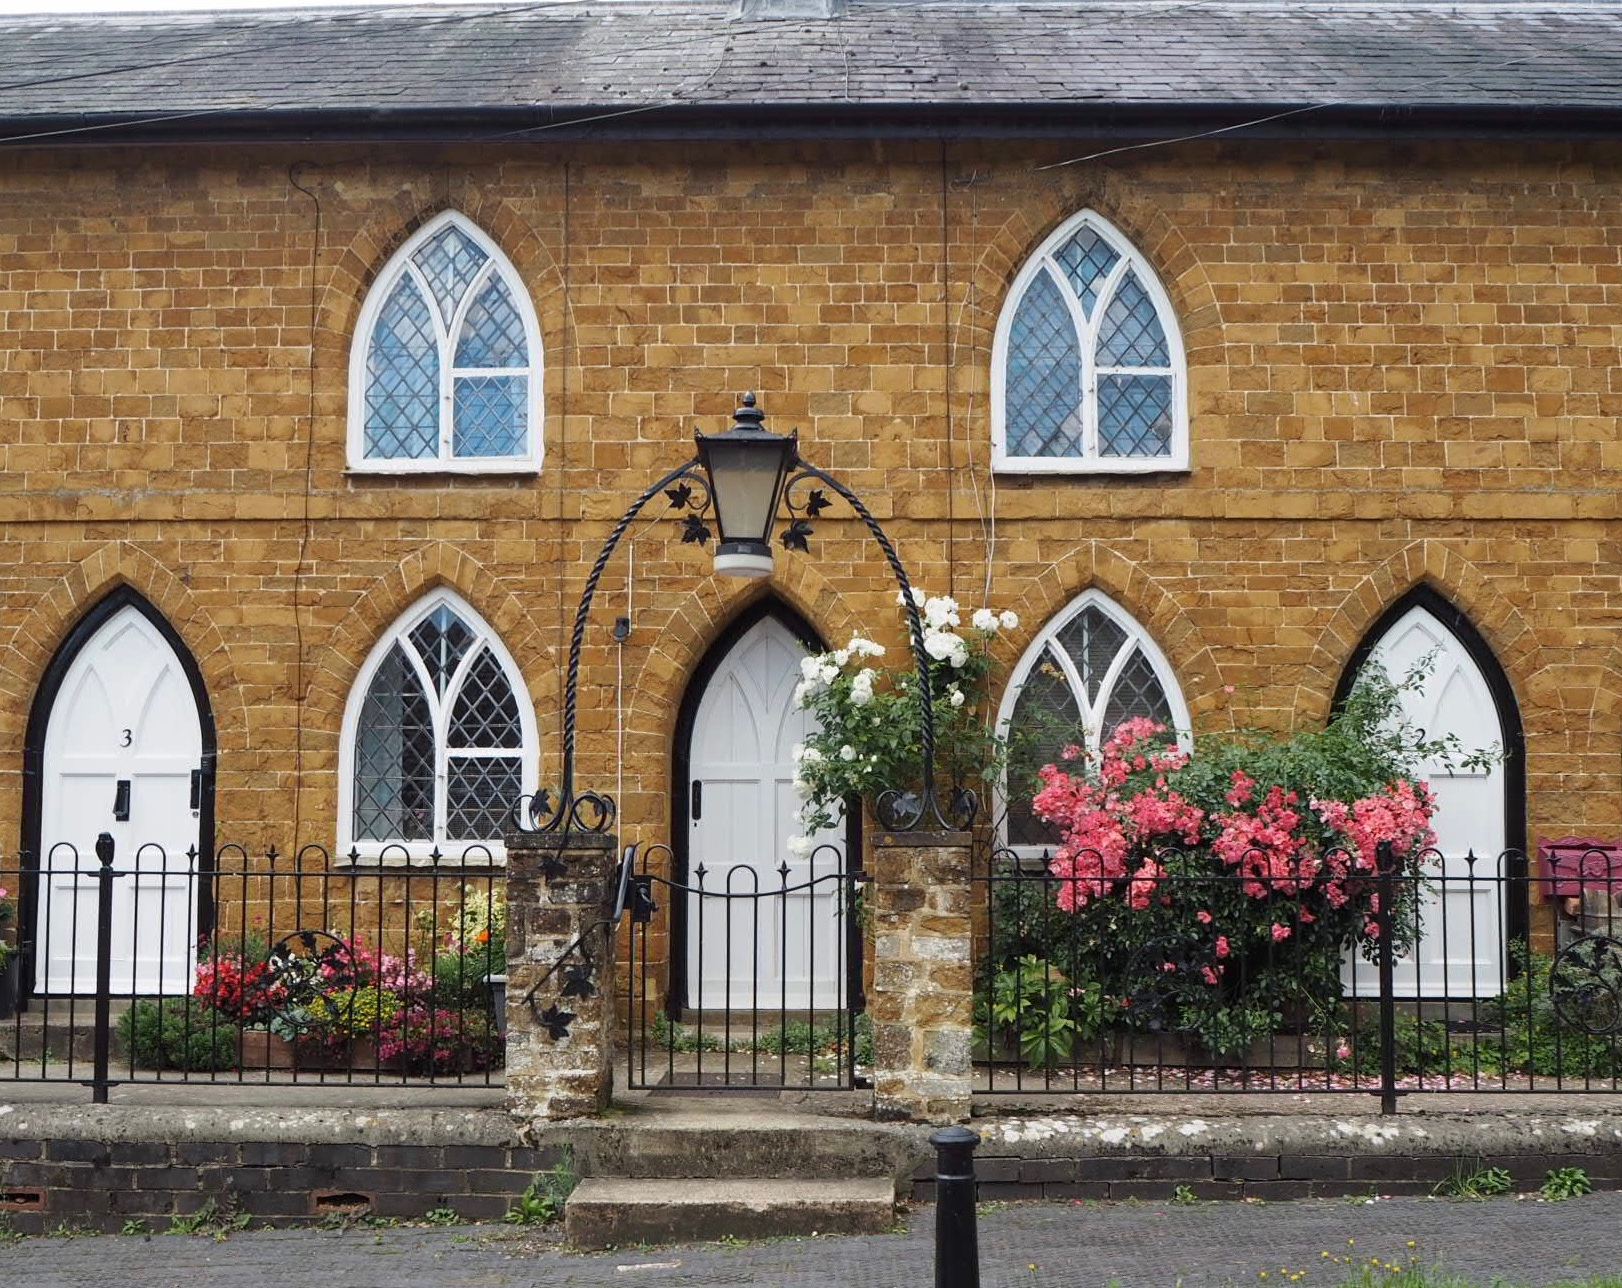 The alms houses behind the church.